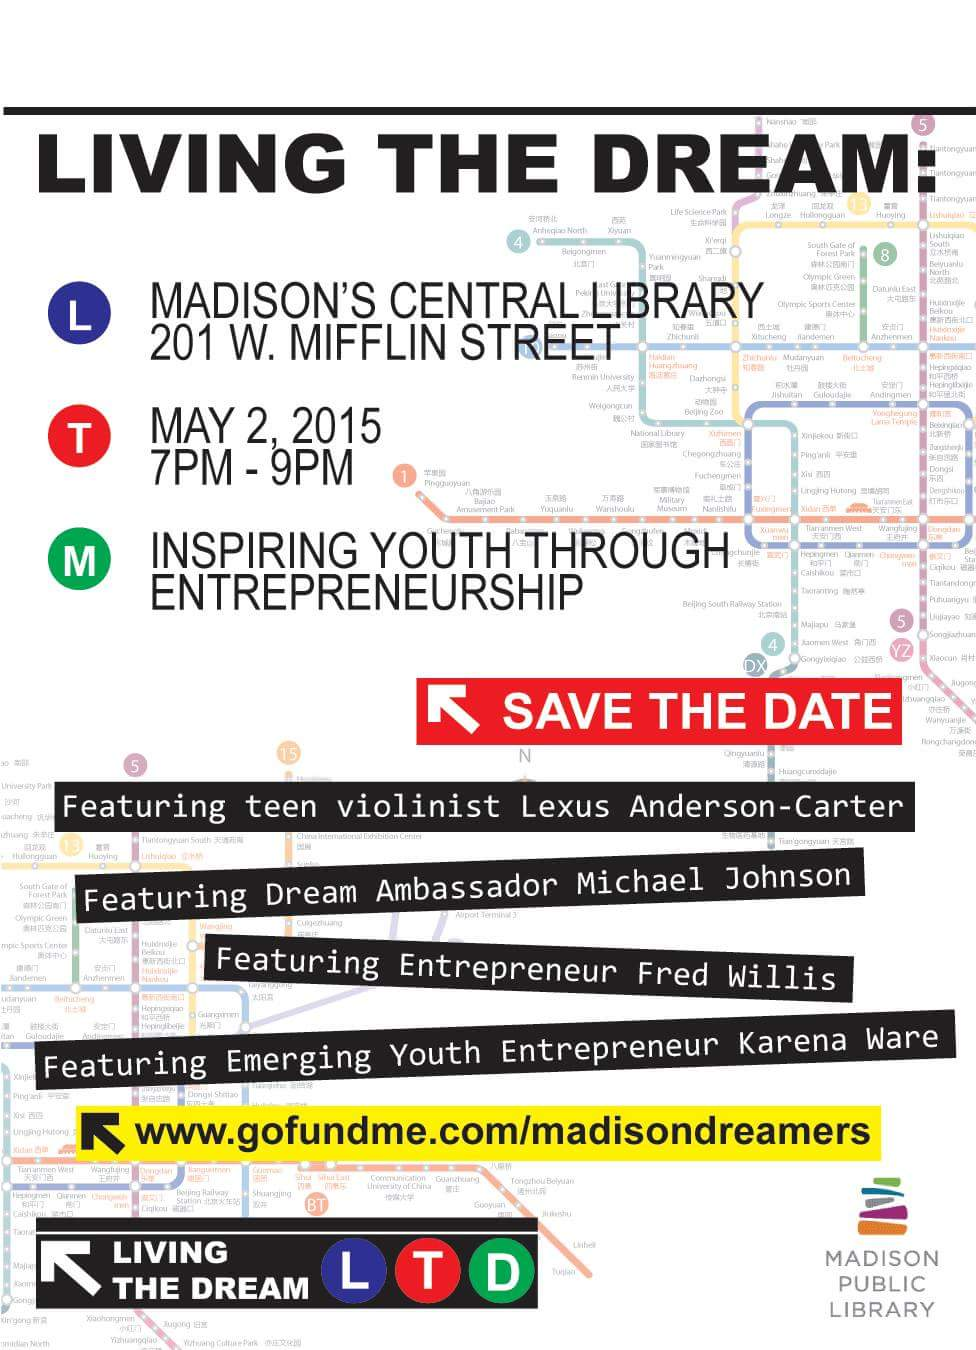 Living The Dream Launch Party - Save the Date